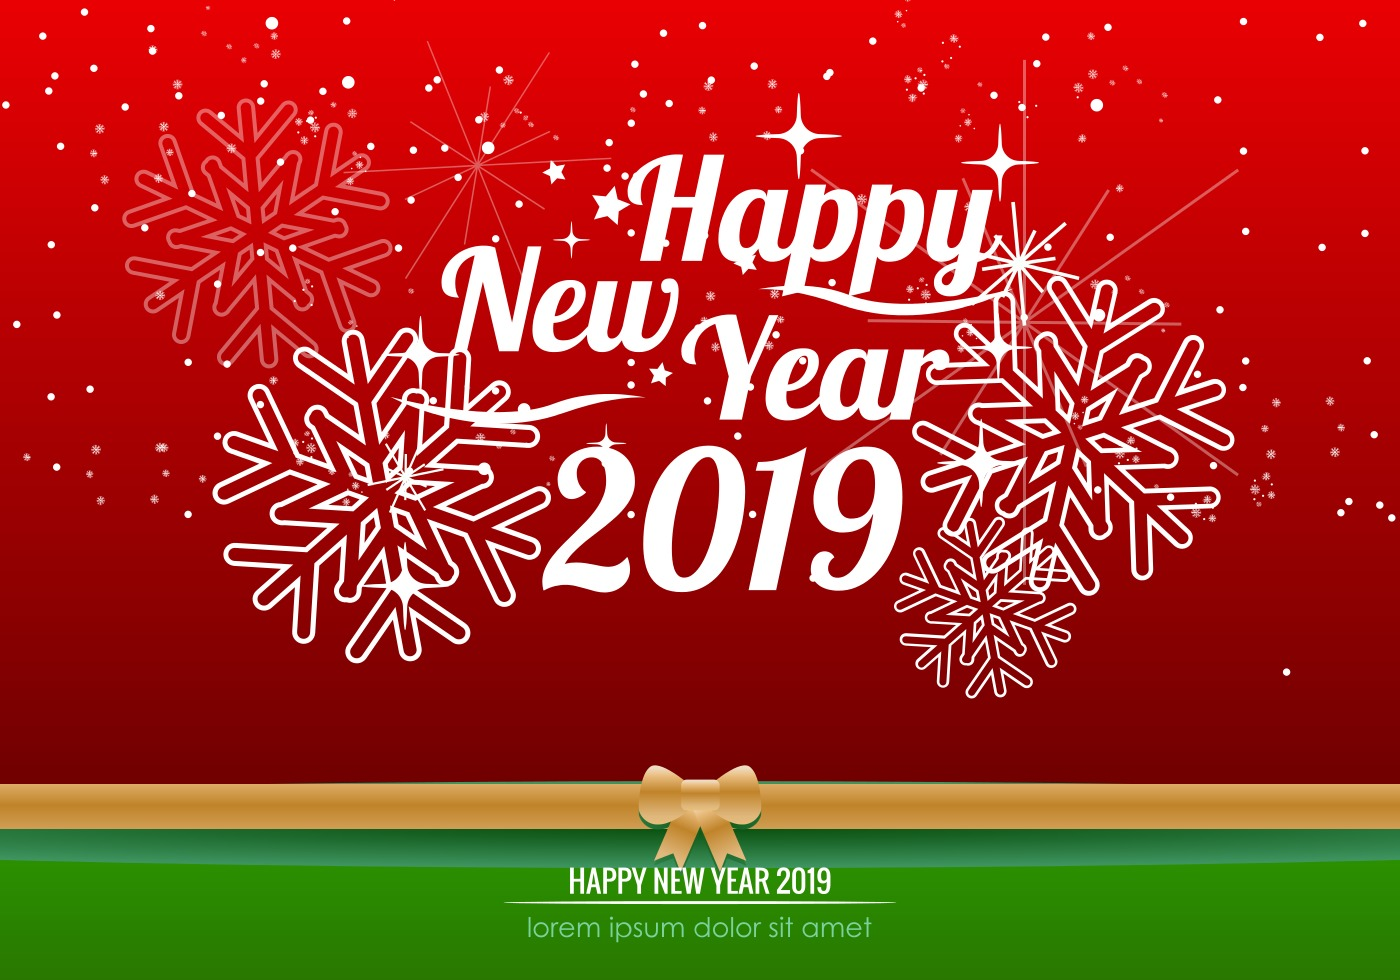 happy new year 2019 background download free vector art stock graphics images